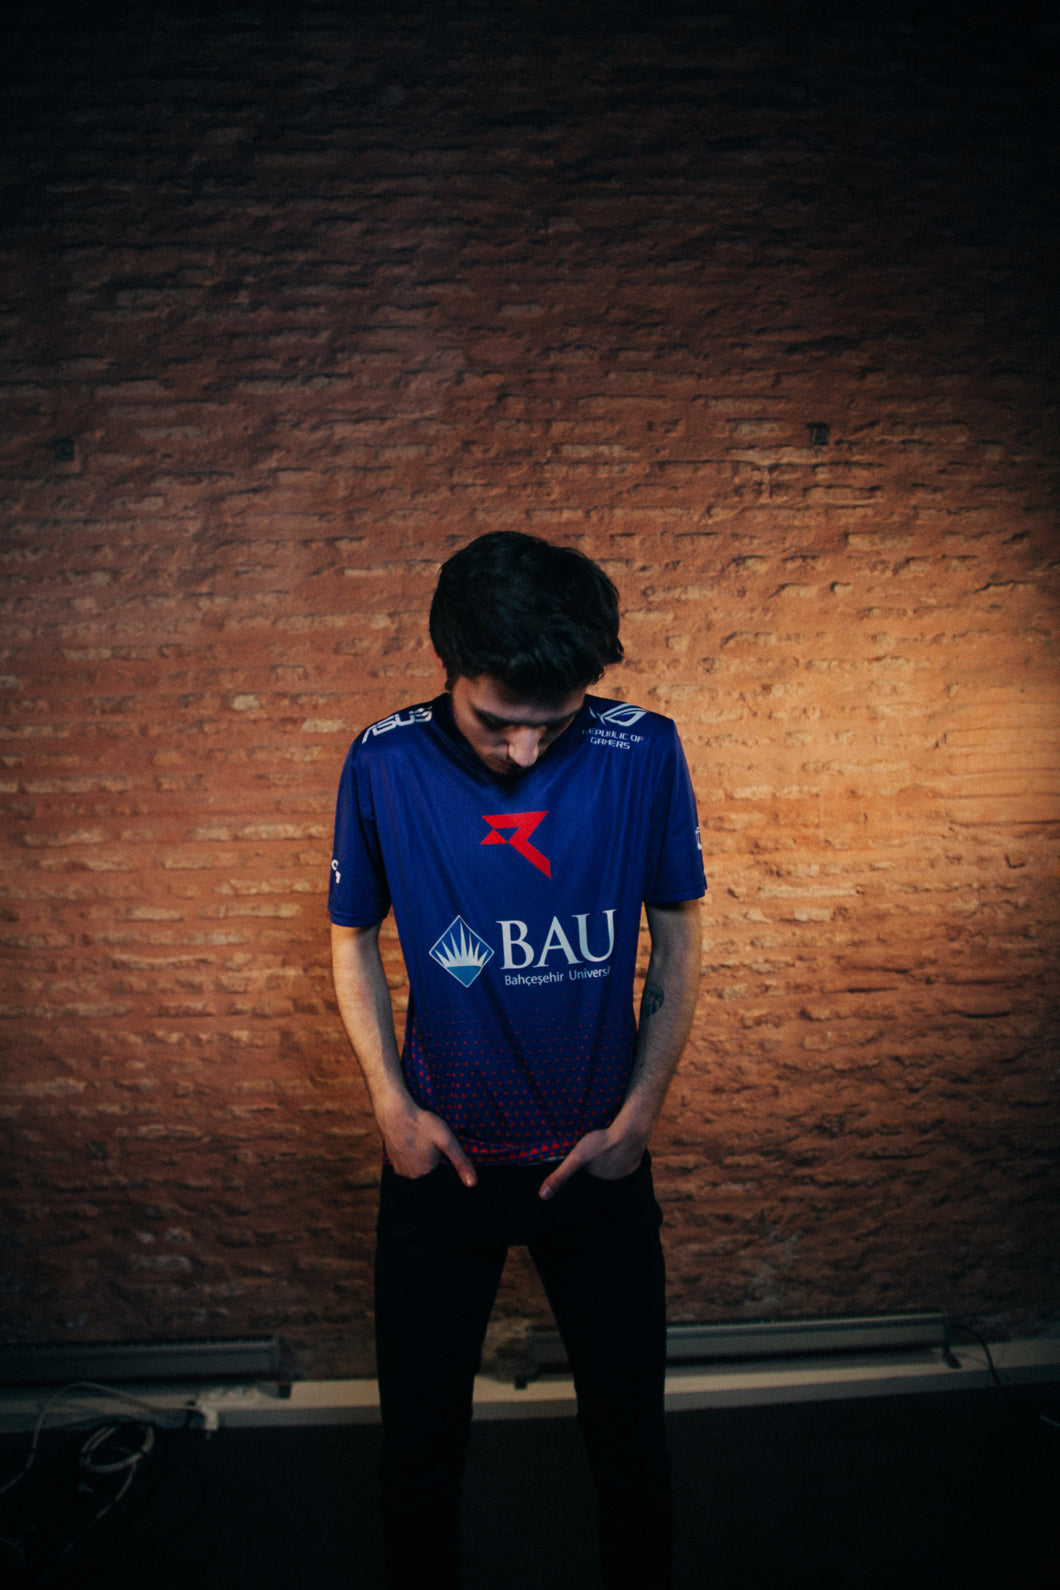 BAU Raiders Forma - RAM Gaming & Esports Apparel